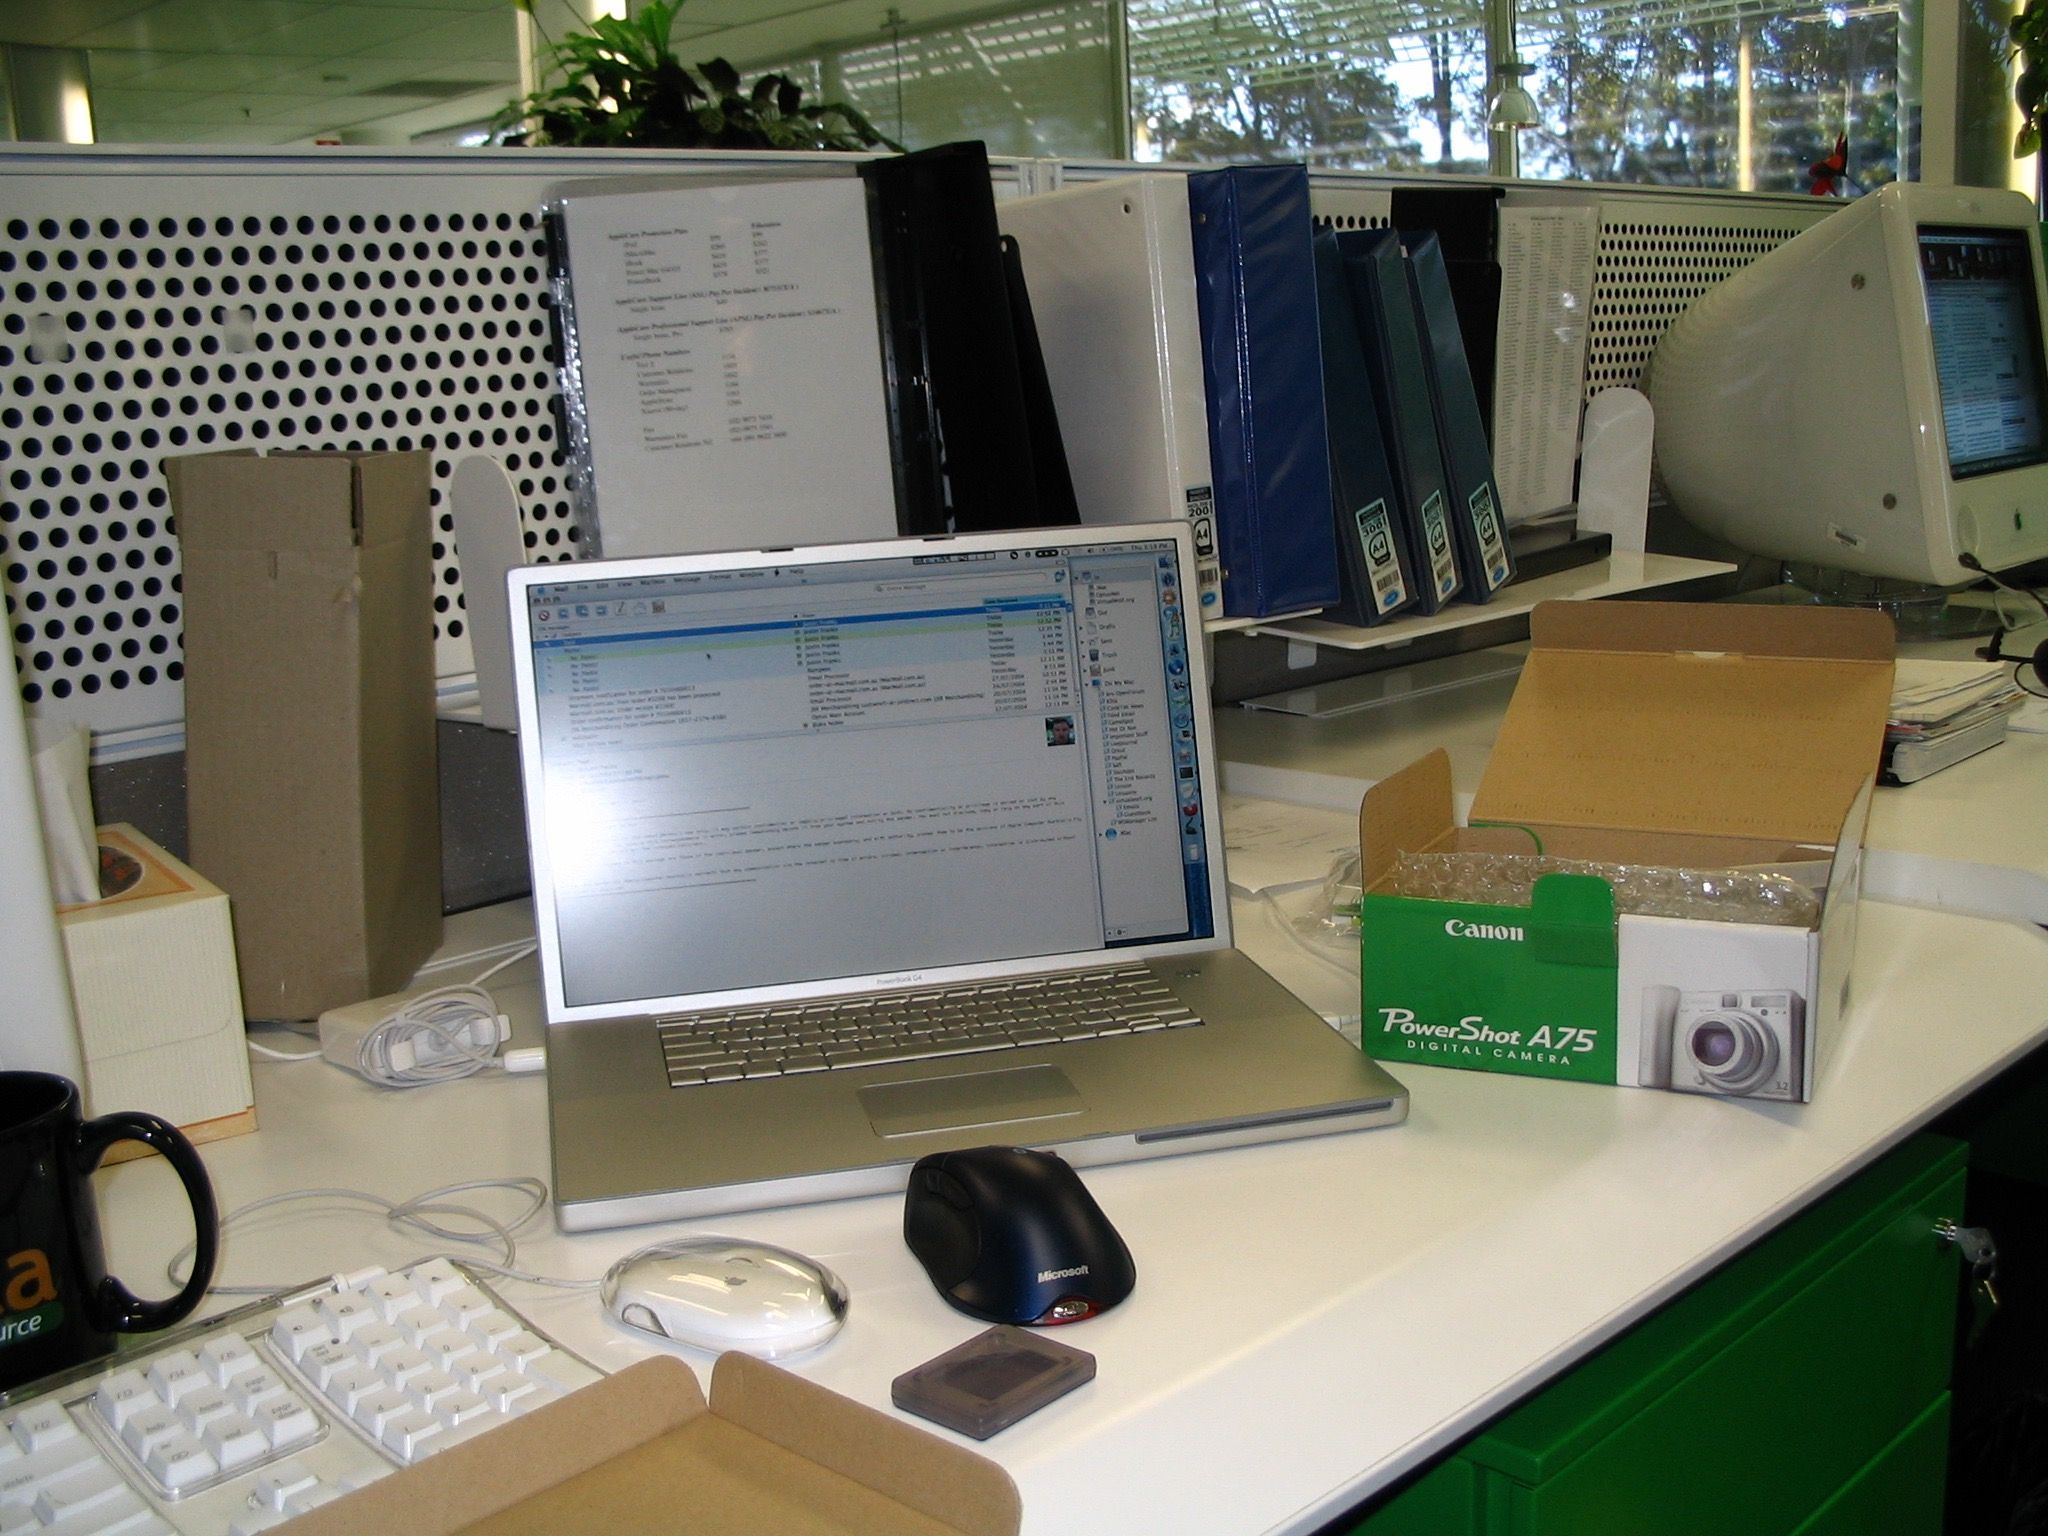 "A photo of a 17"" PowerBook G4 sitting on a desk alongside an opened box for a Canon PowerShot A75 camera (the camera that this photo was taken with)."